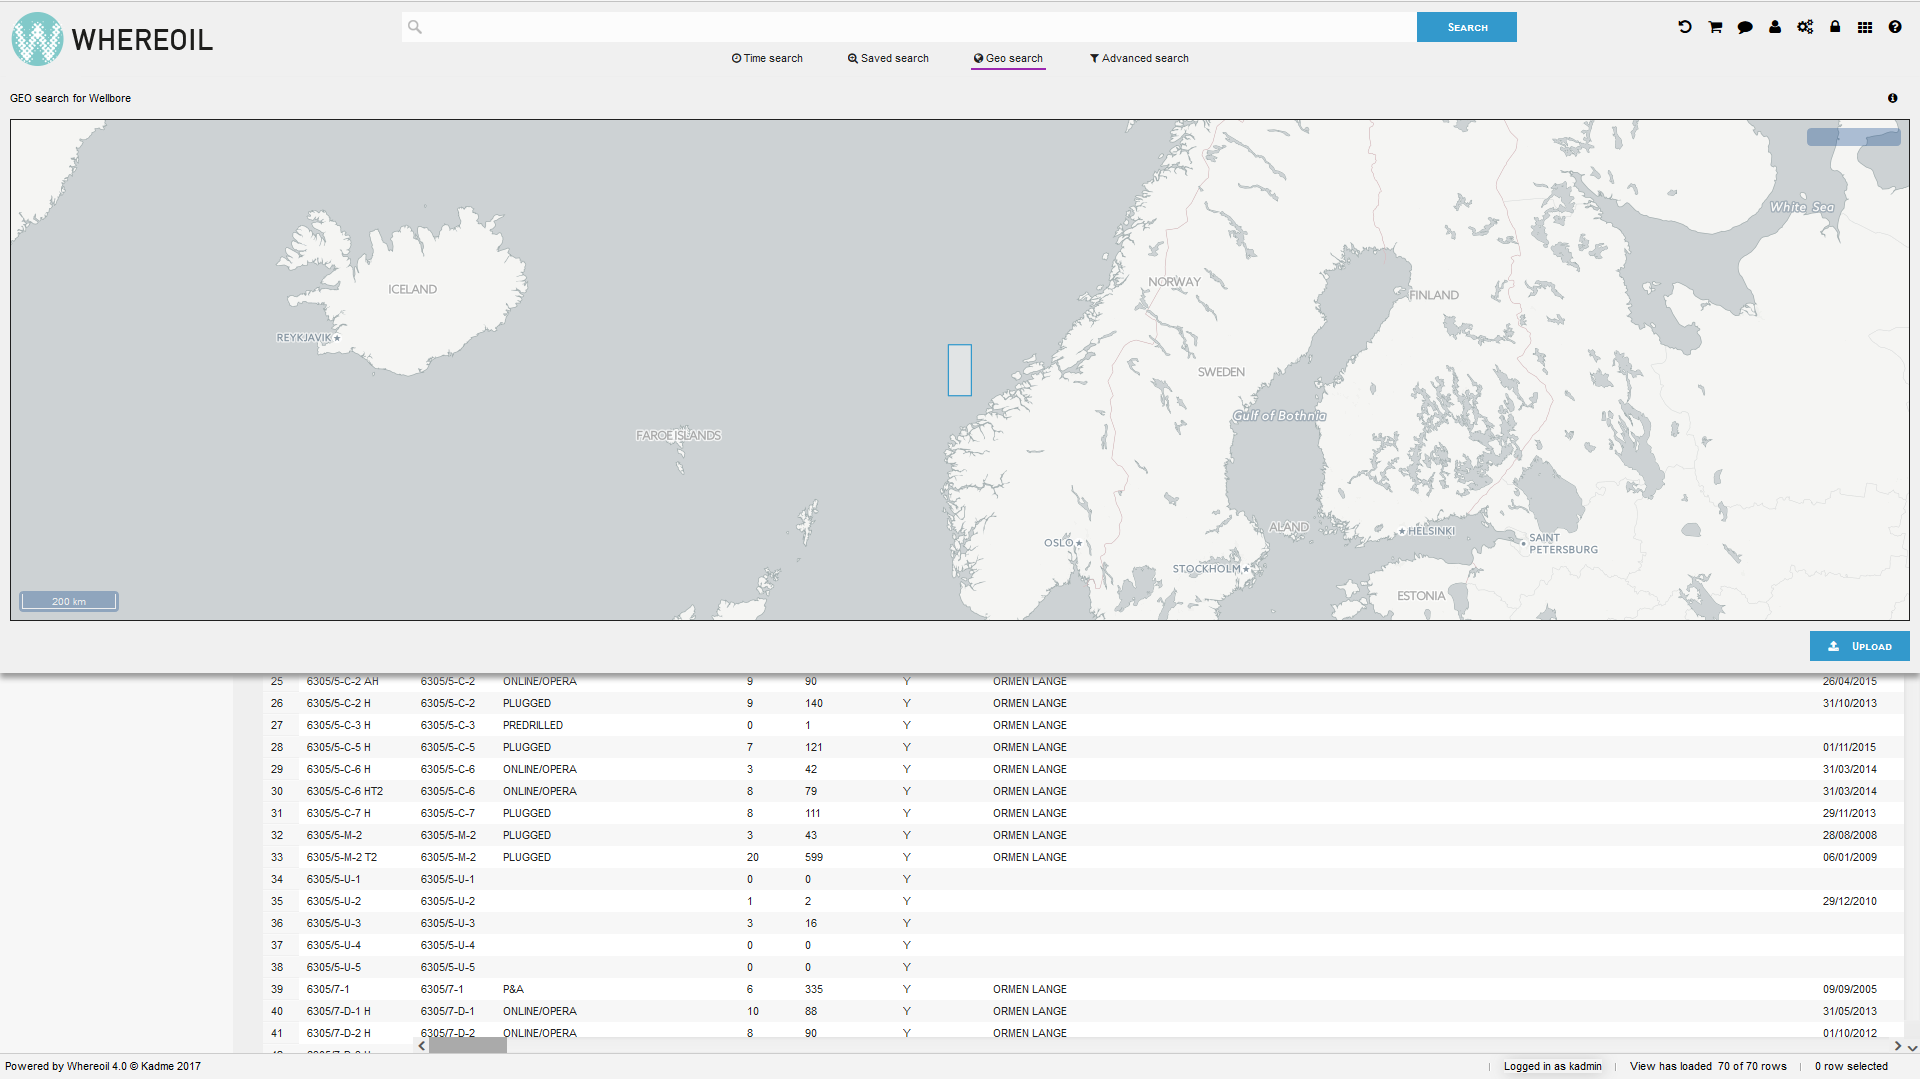 Whereoil's geosearch functionality makes it possible to search data in areas of interest and create a data collection.